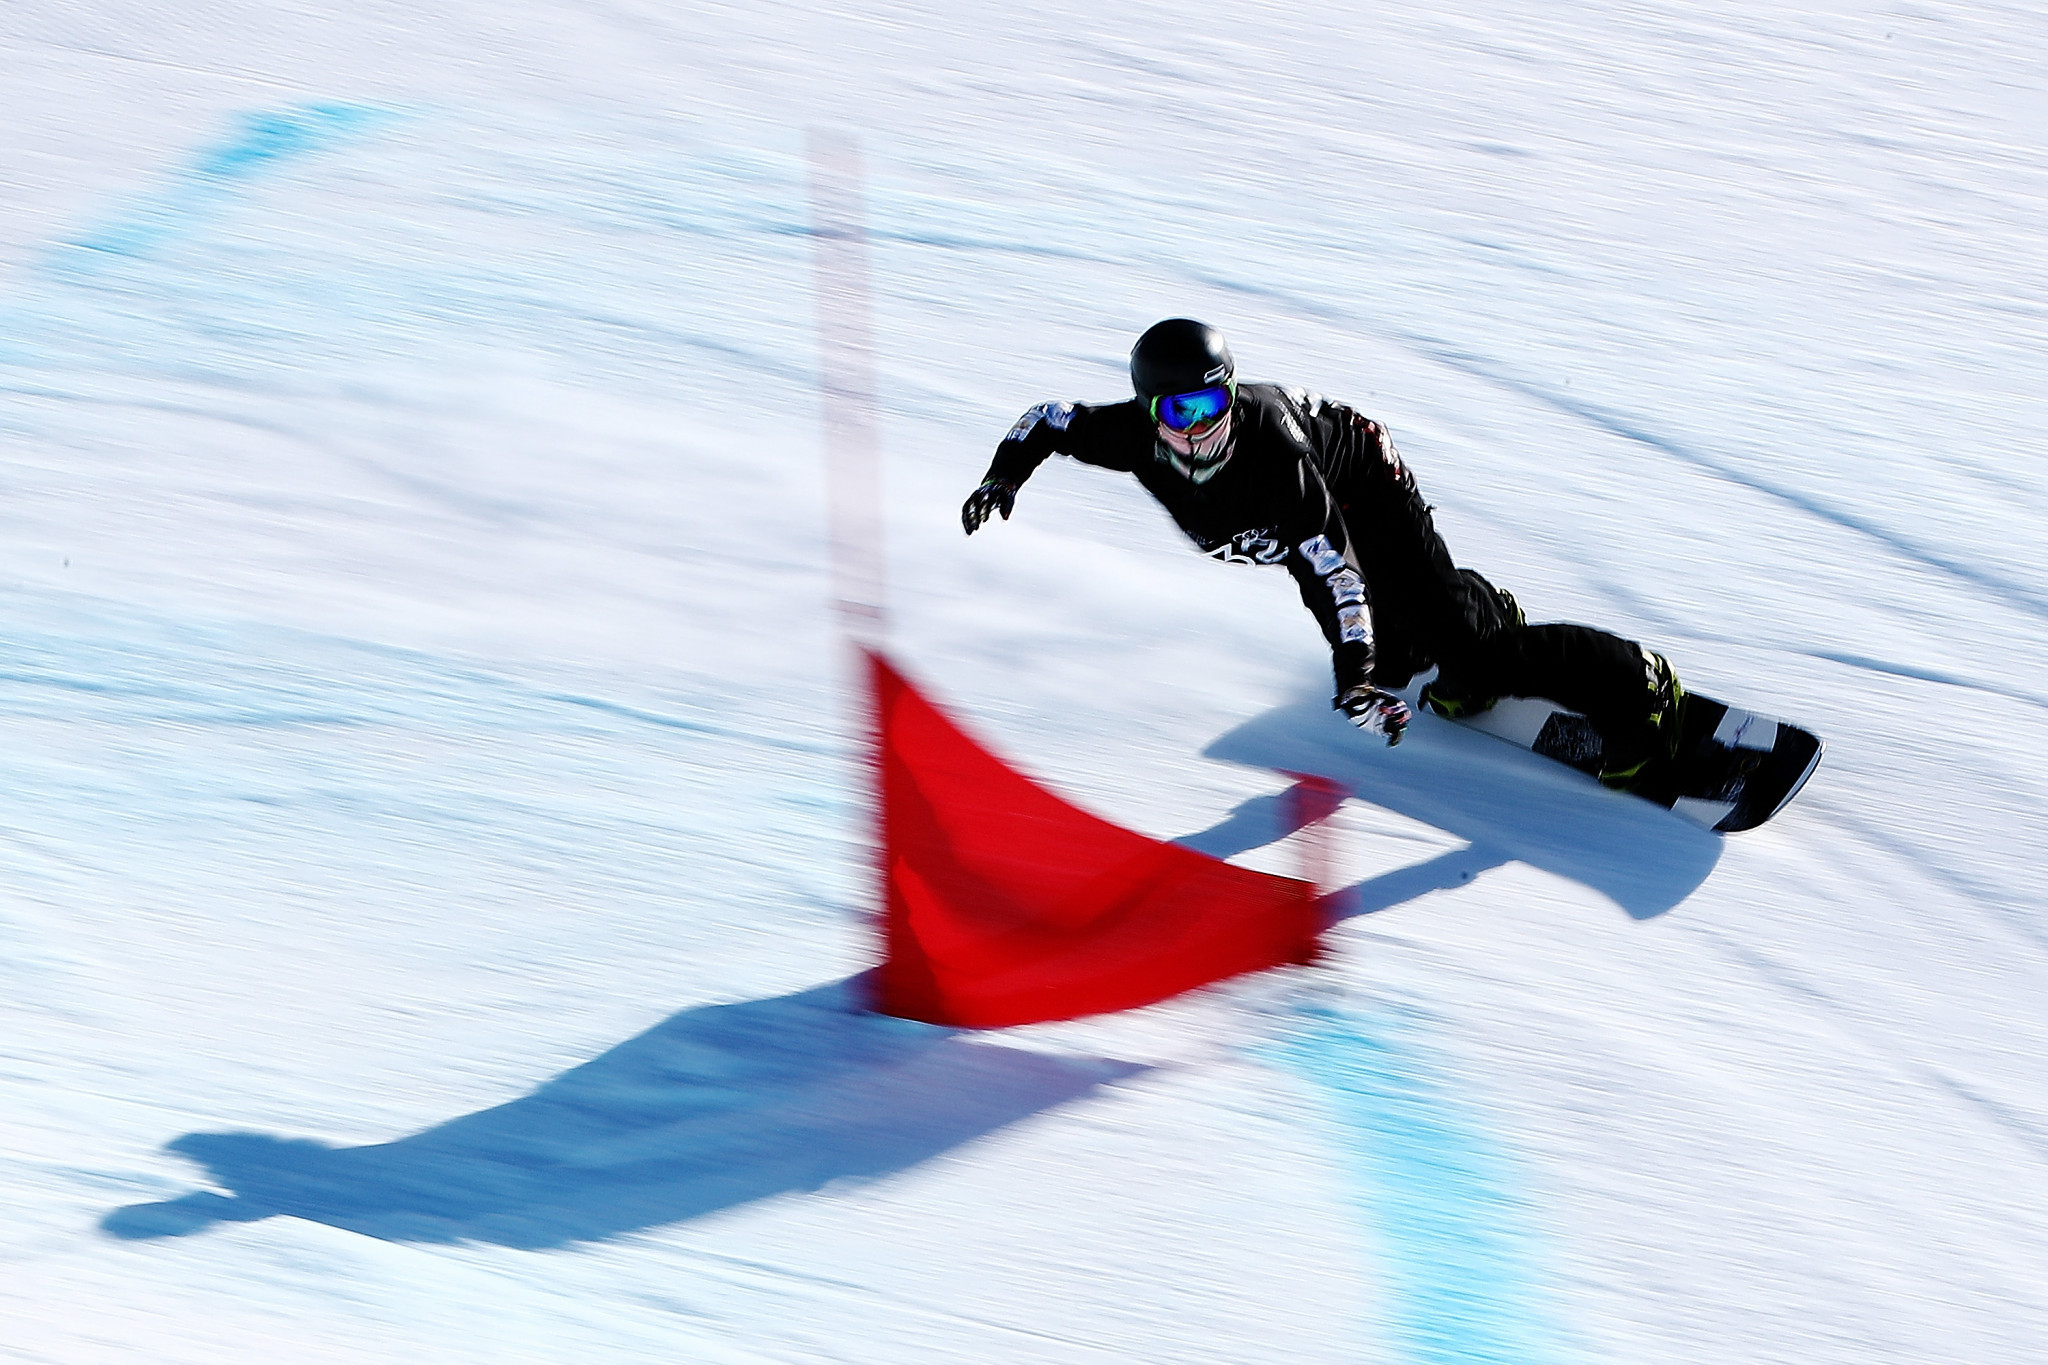 Tudhope named Snow Australia's Paralympic athlete of the year